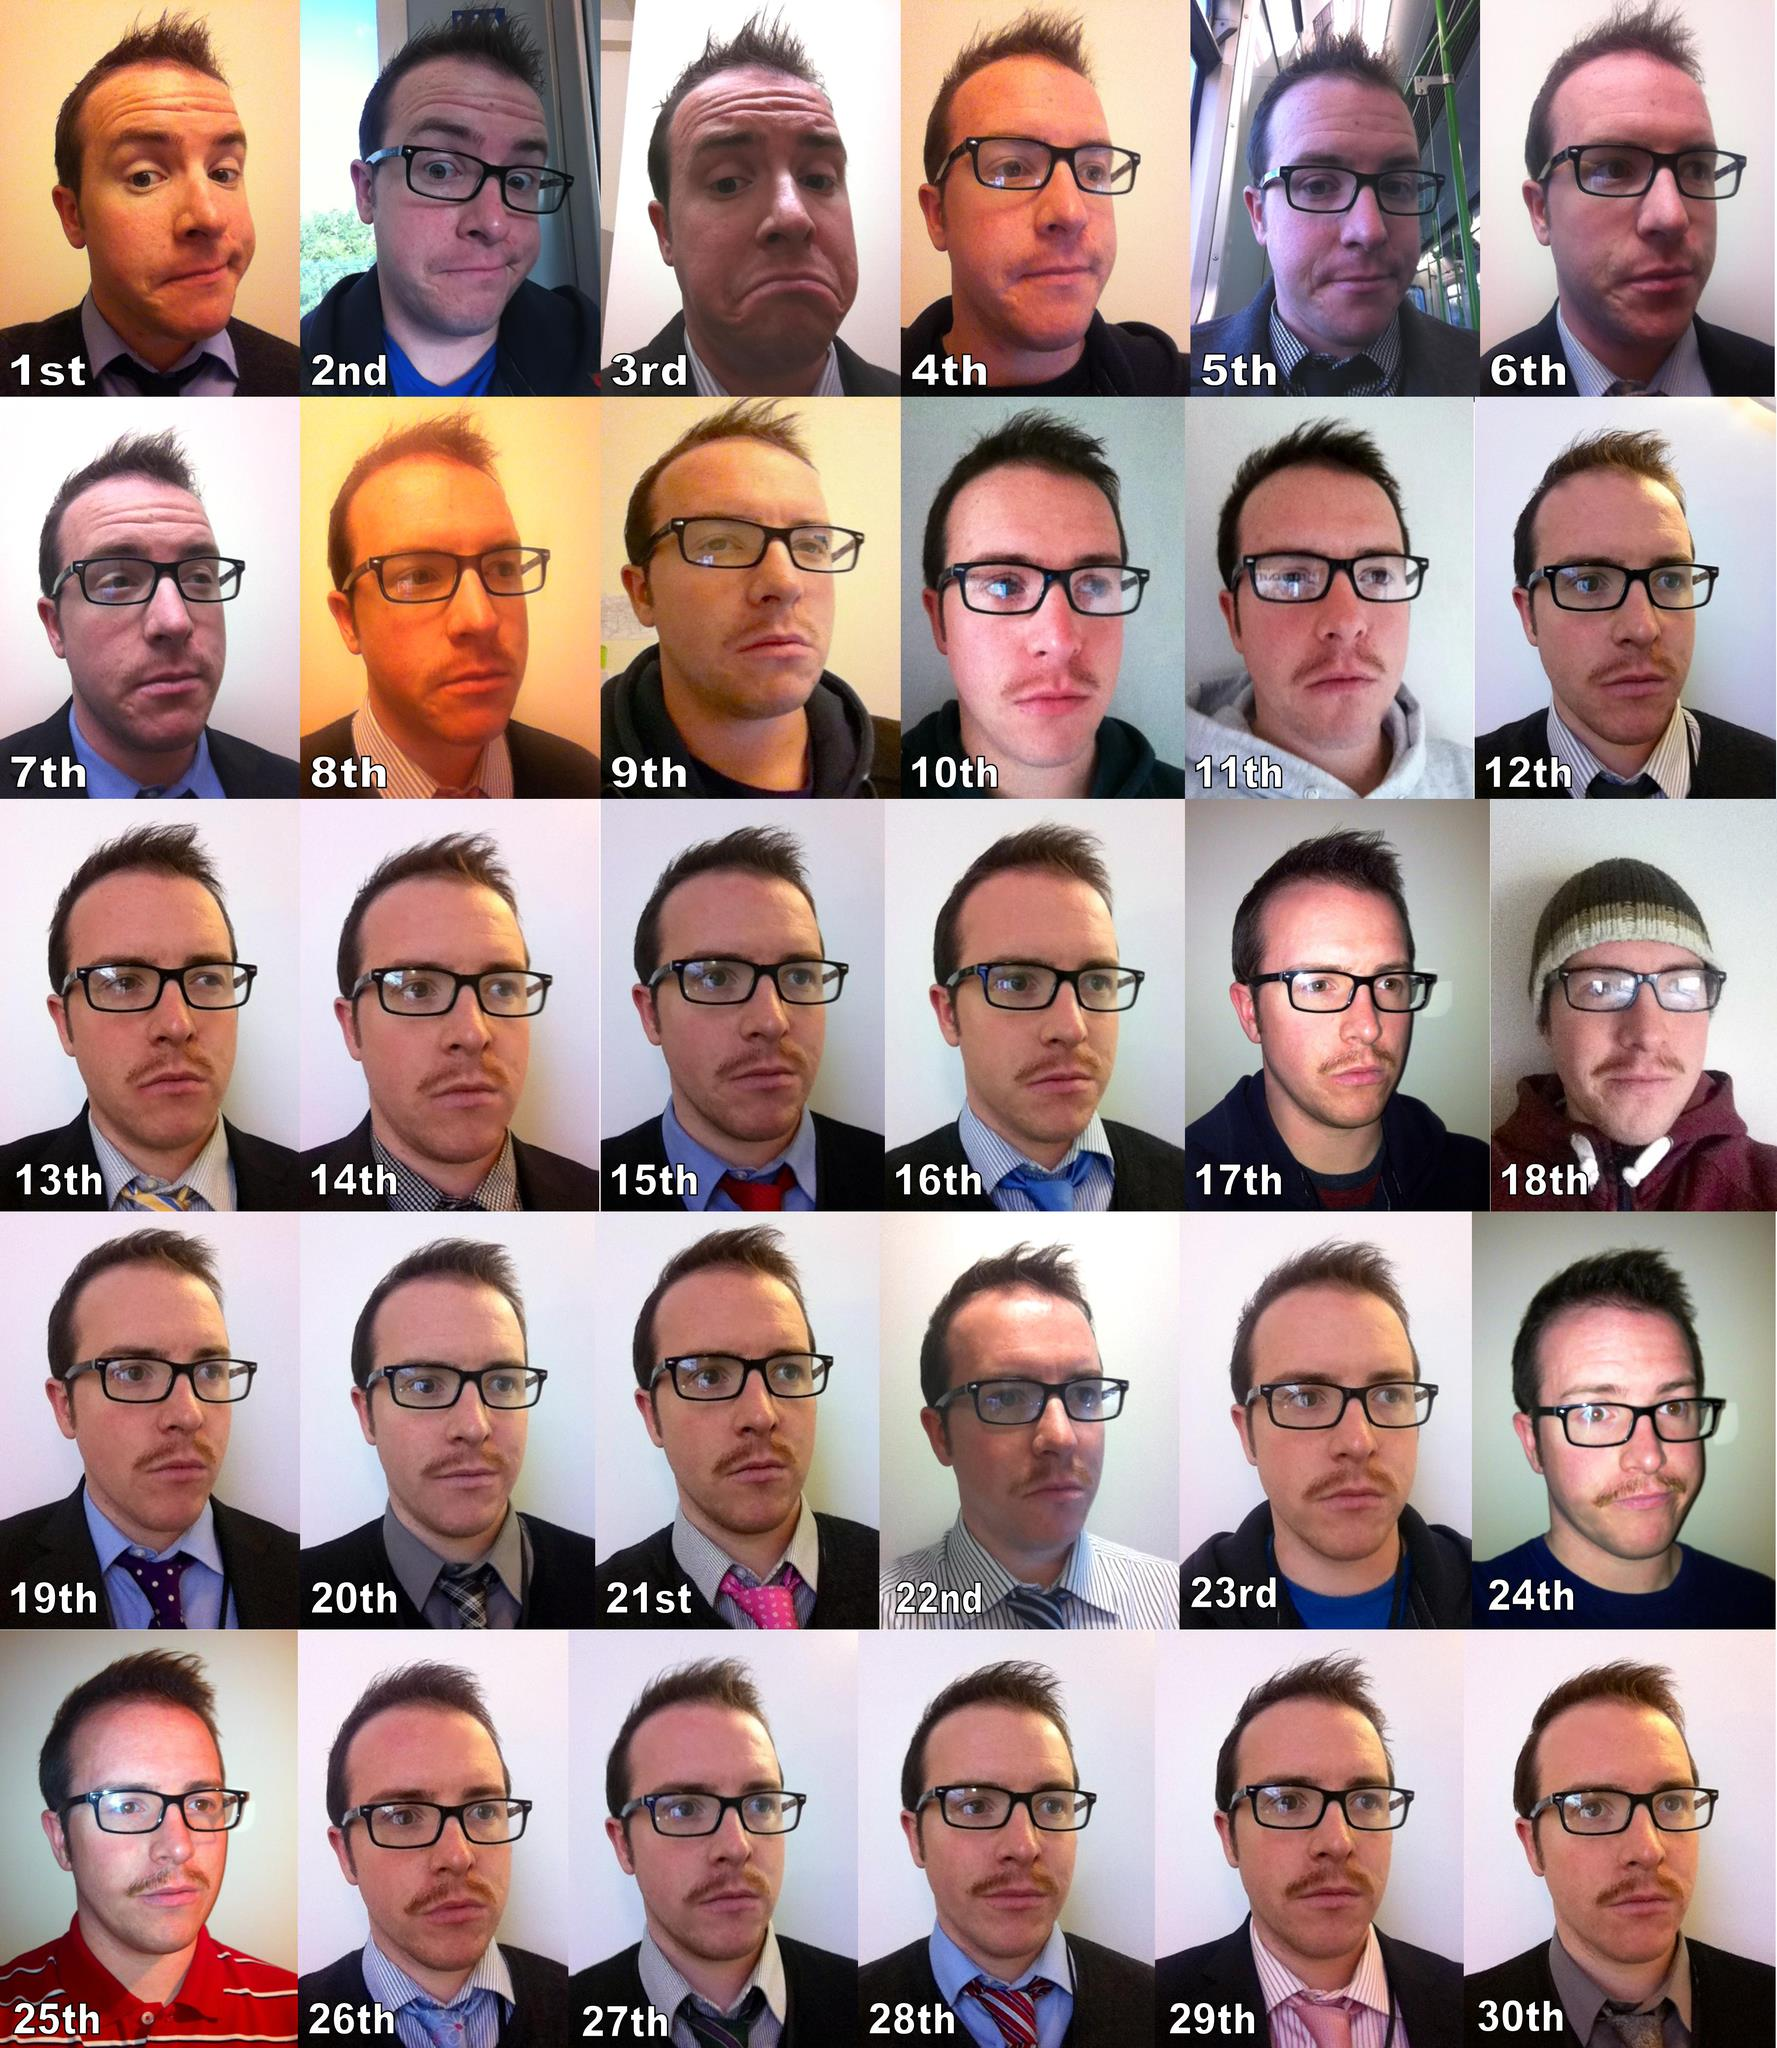 Chris Owens: Movember 1 through 30, 2012 (International)